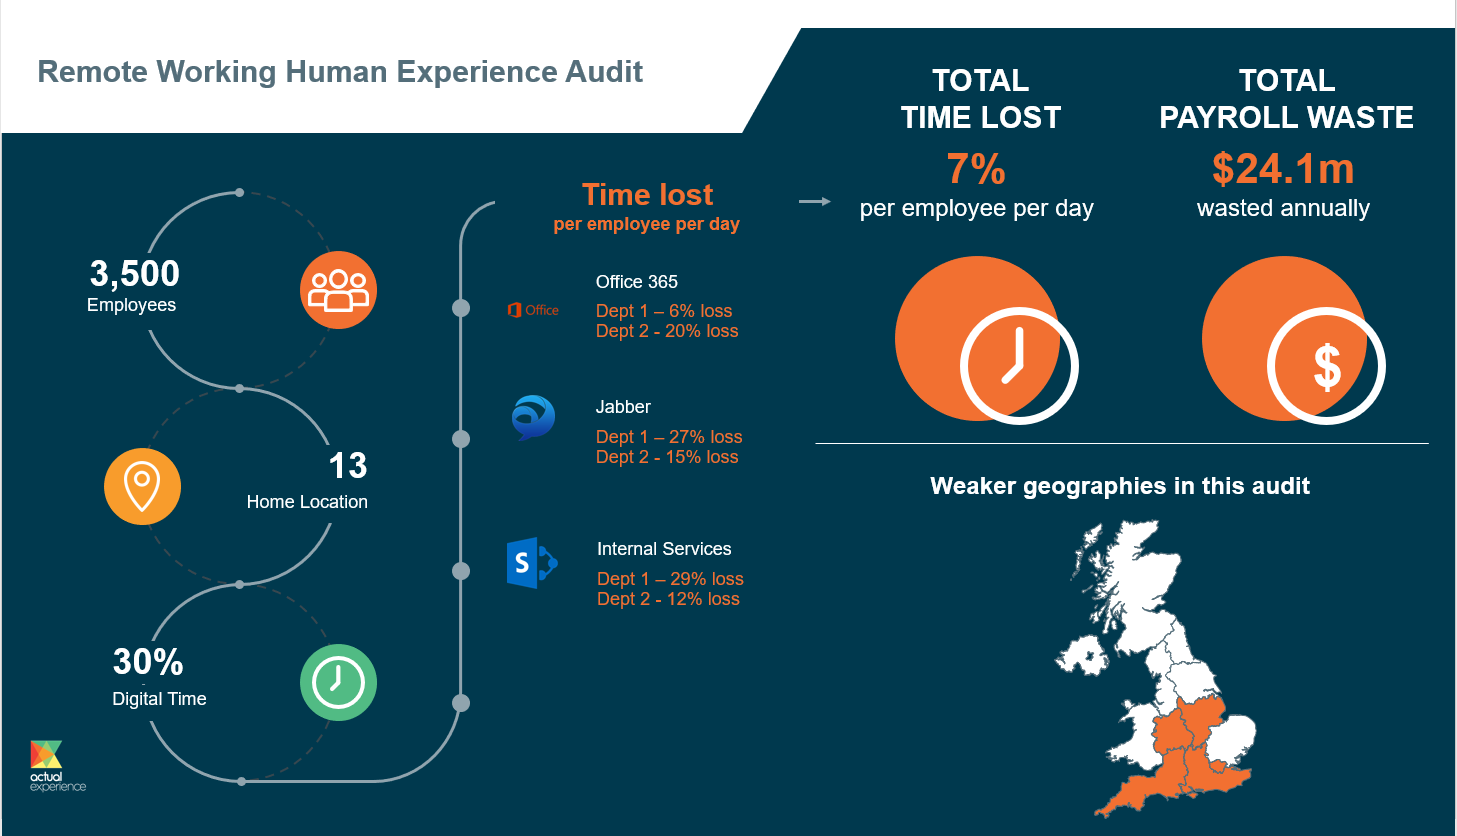 Remote Working Human Experience Audit Infographic_v2